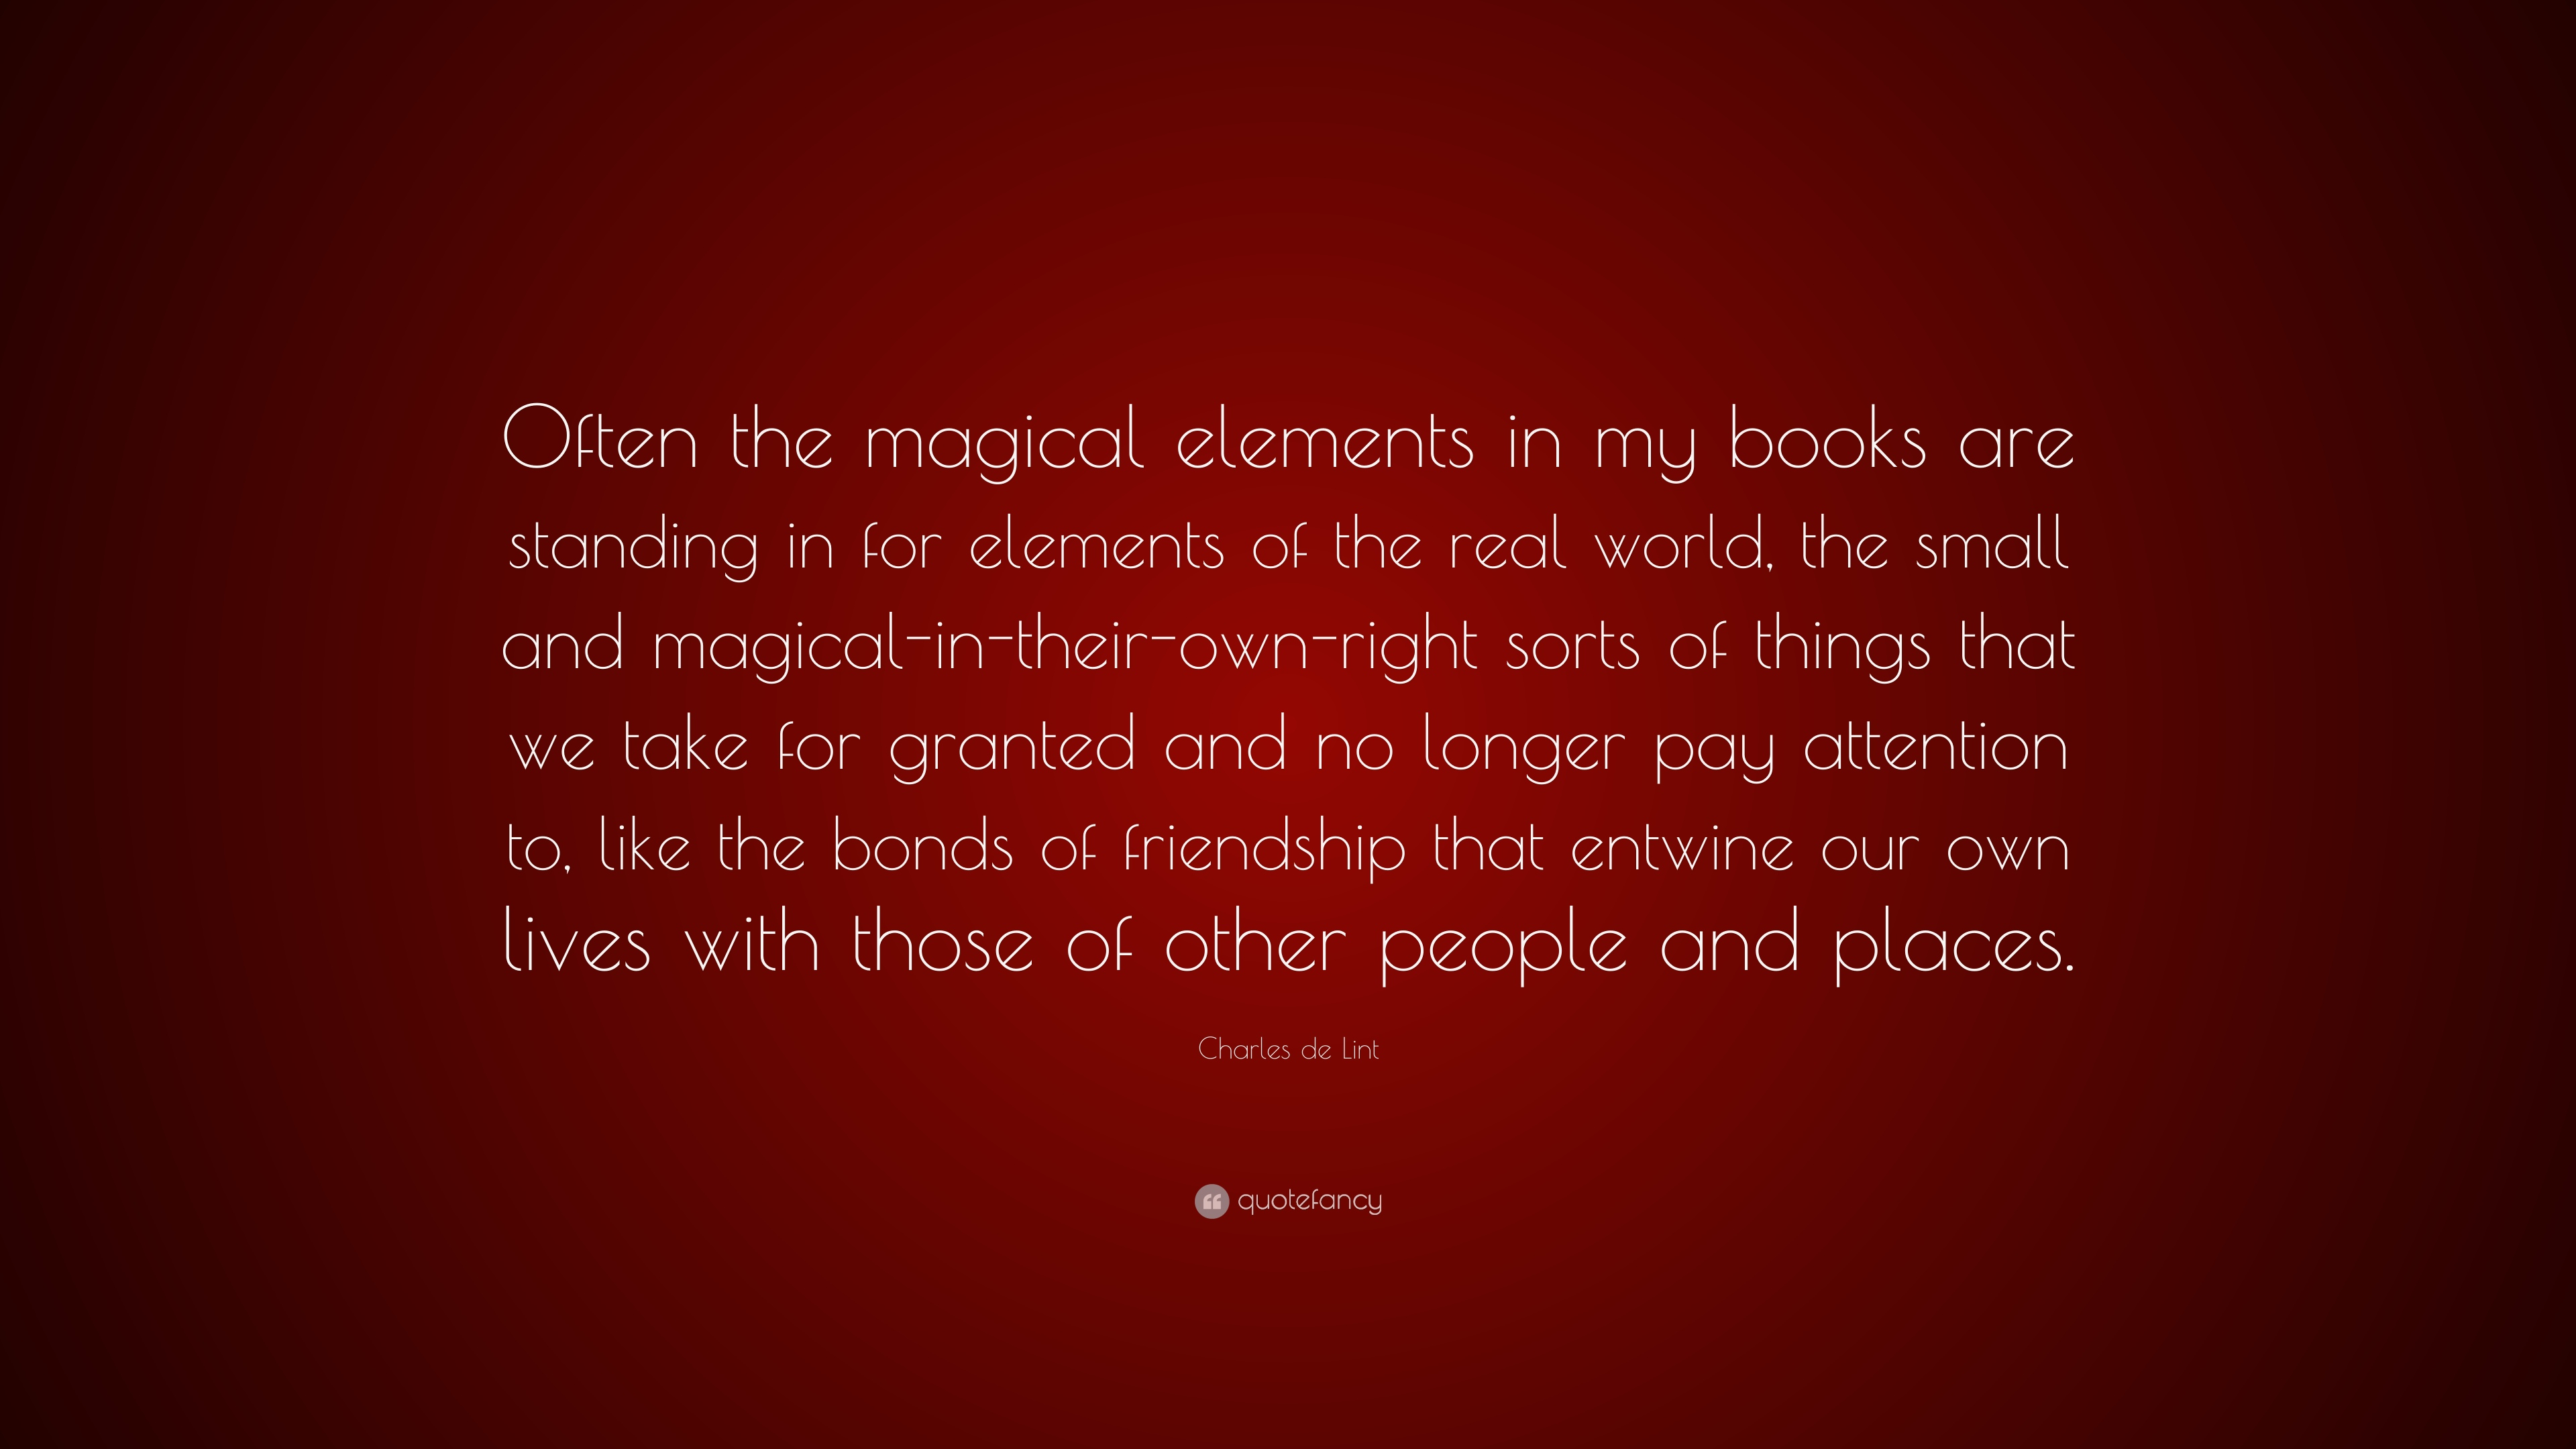 charles de lint quote often the magical elements in my books are